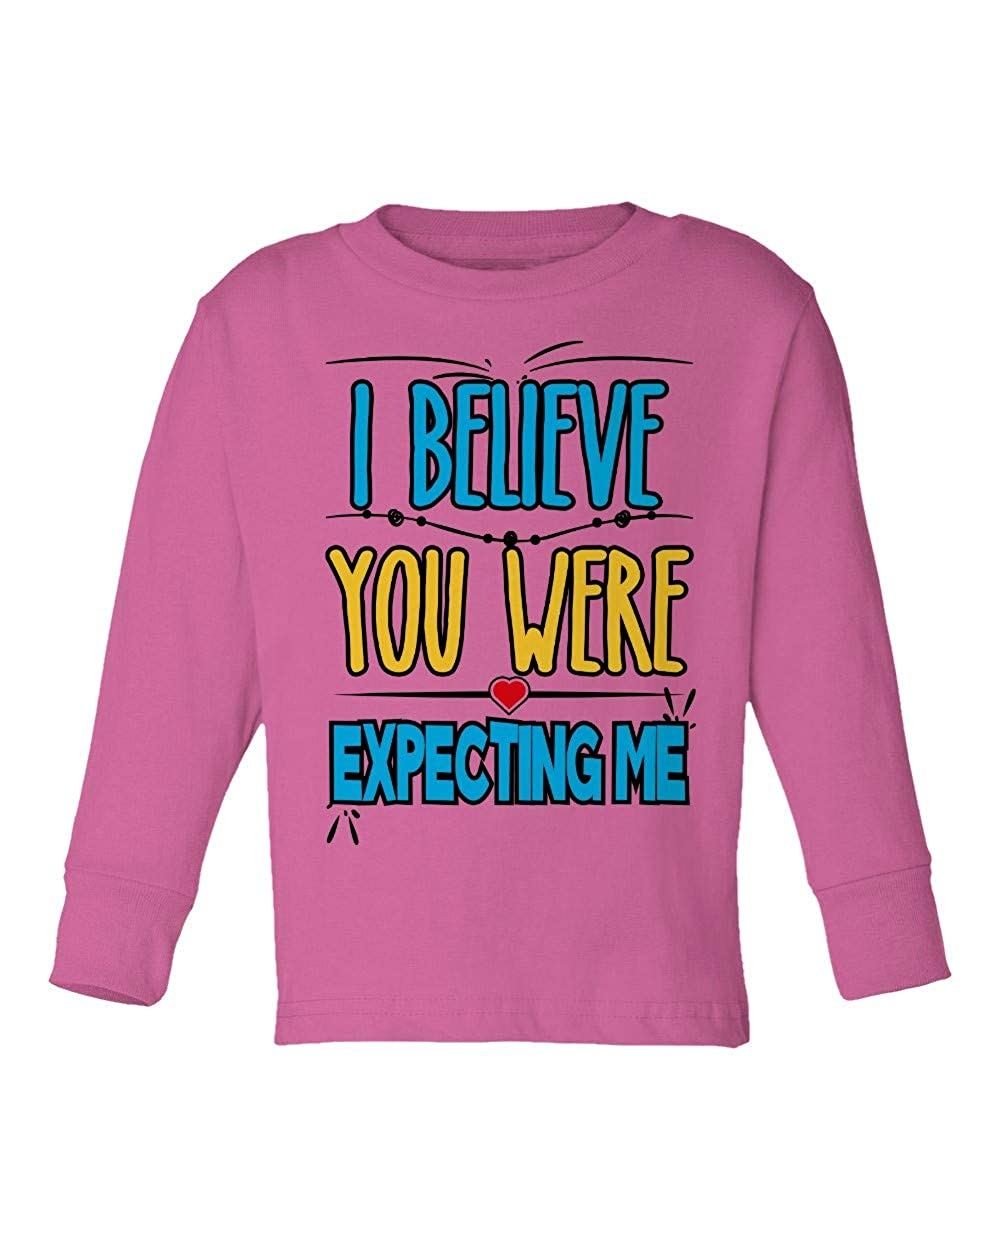 Societee I Believe You were Expecting Me Funny Girls Boys Toddler Long Sleeve T-Shirt